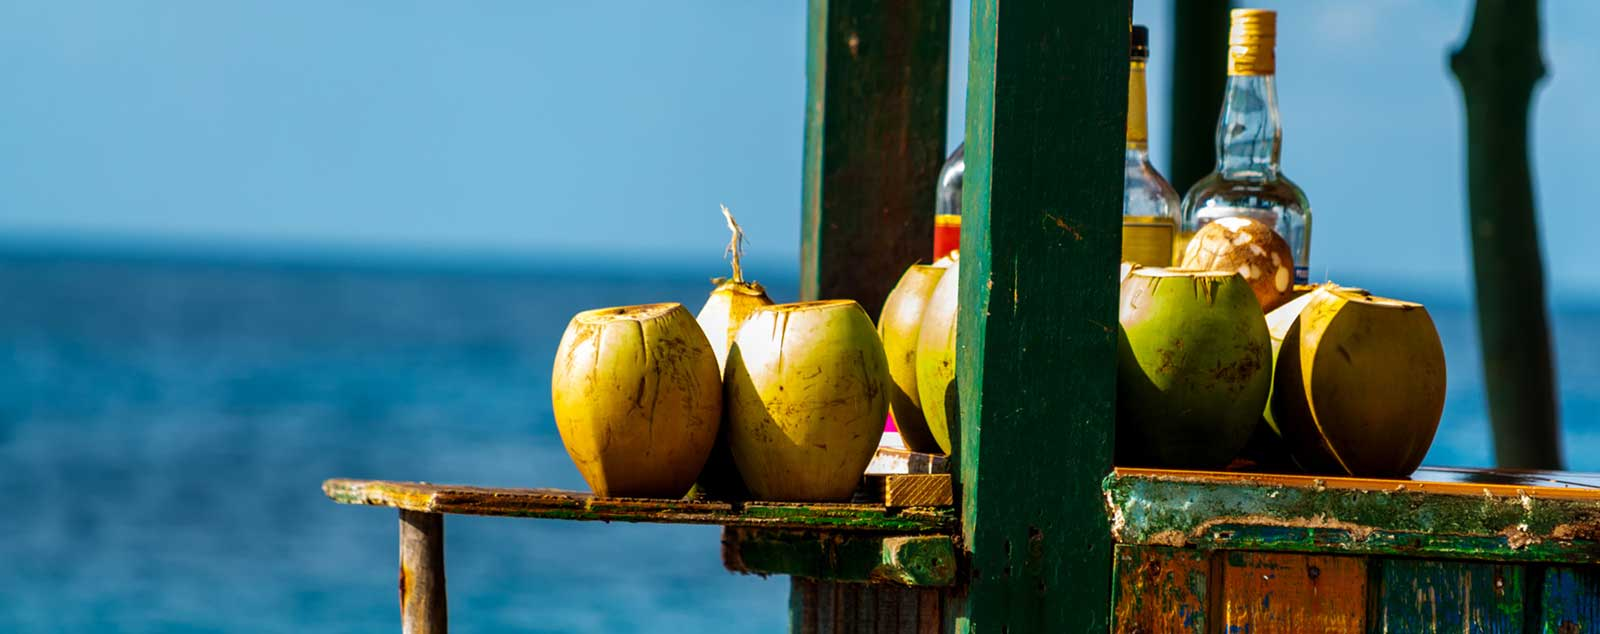 Blind Holidays in Colombia. Image of many coconuts and bottles of rum sit on a colorfully painted wooden bar